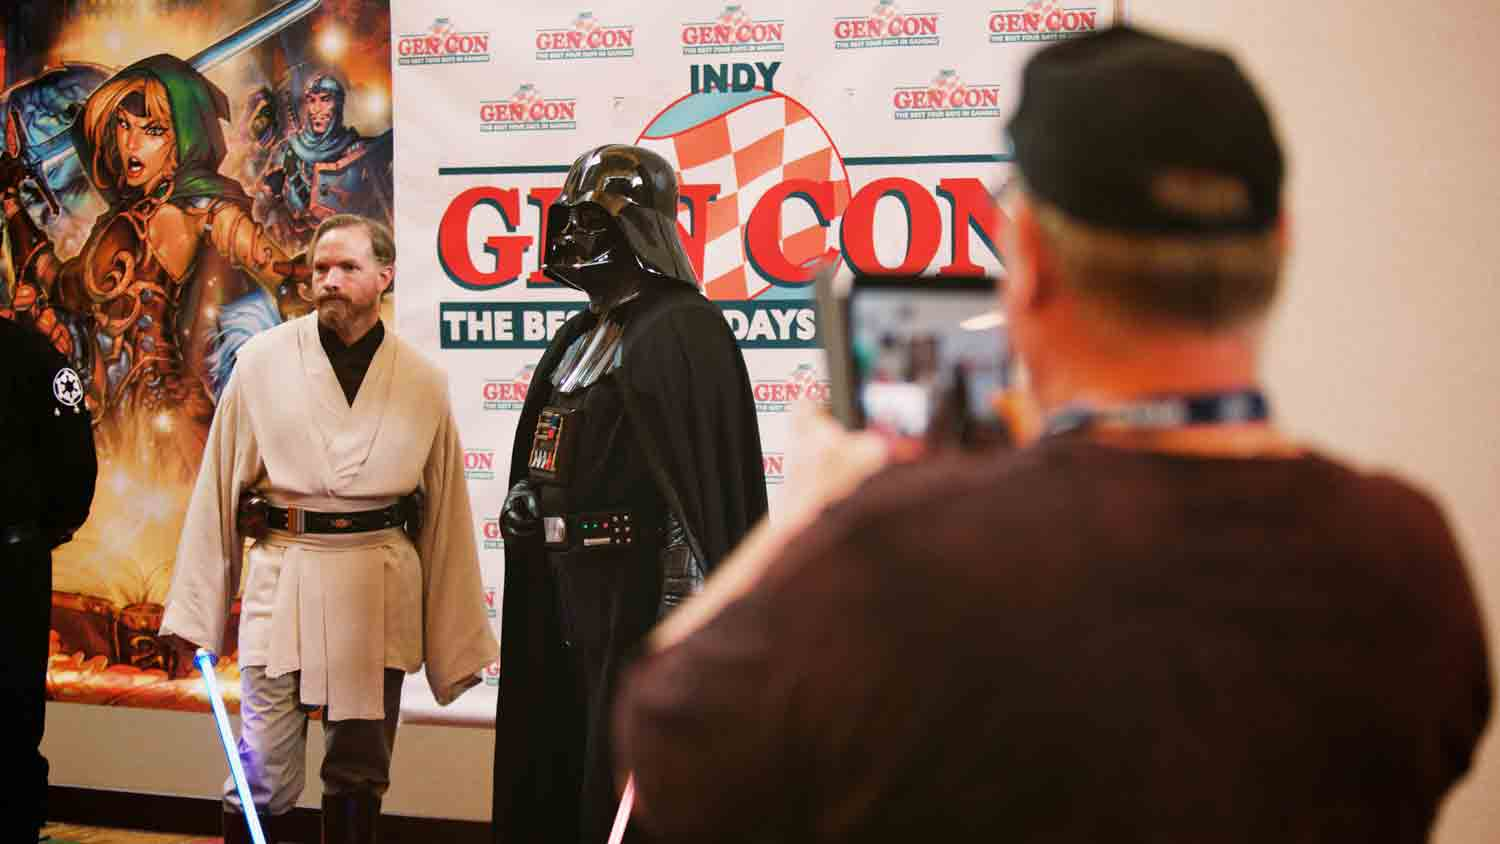 Gen Con 2015- The Best Four Days in Gaming 5